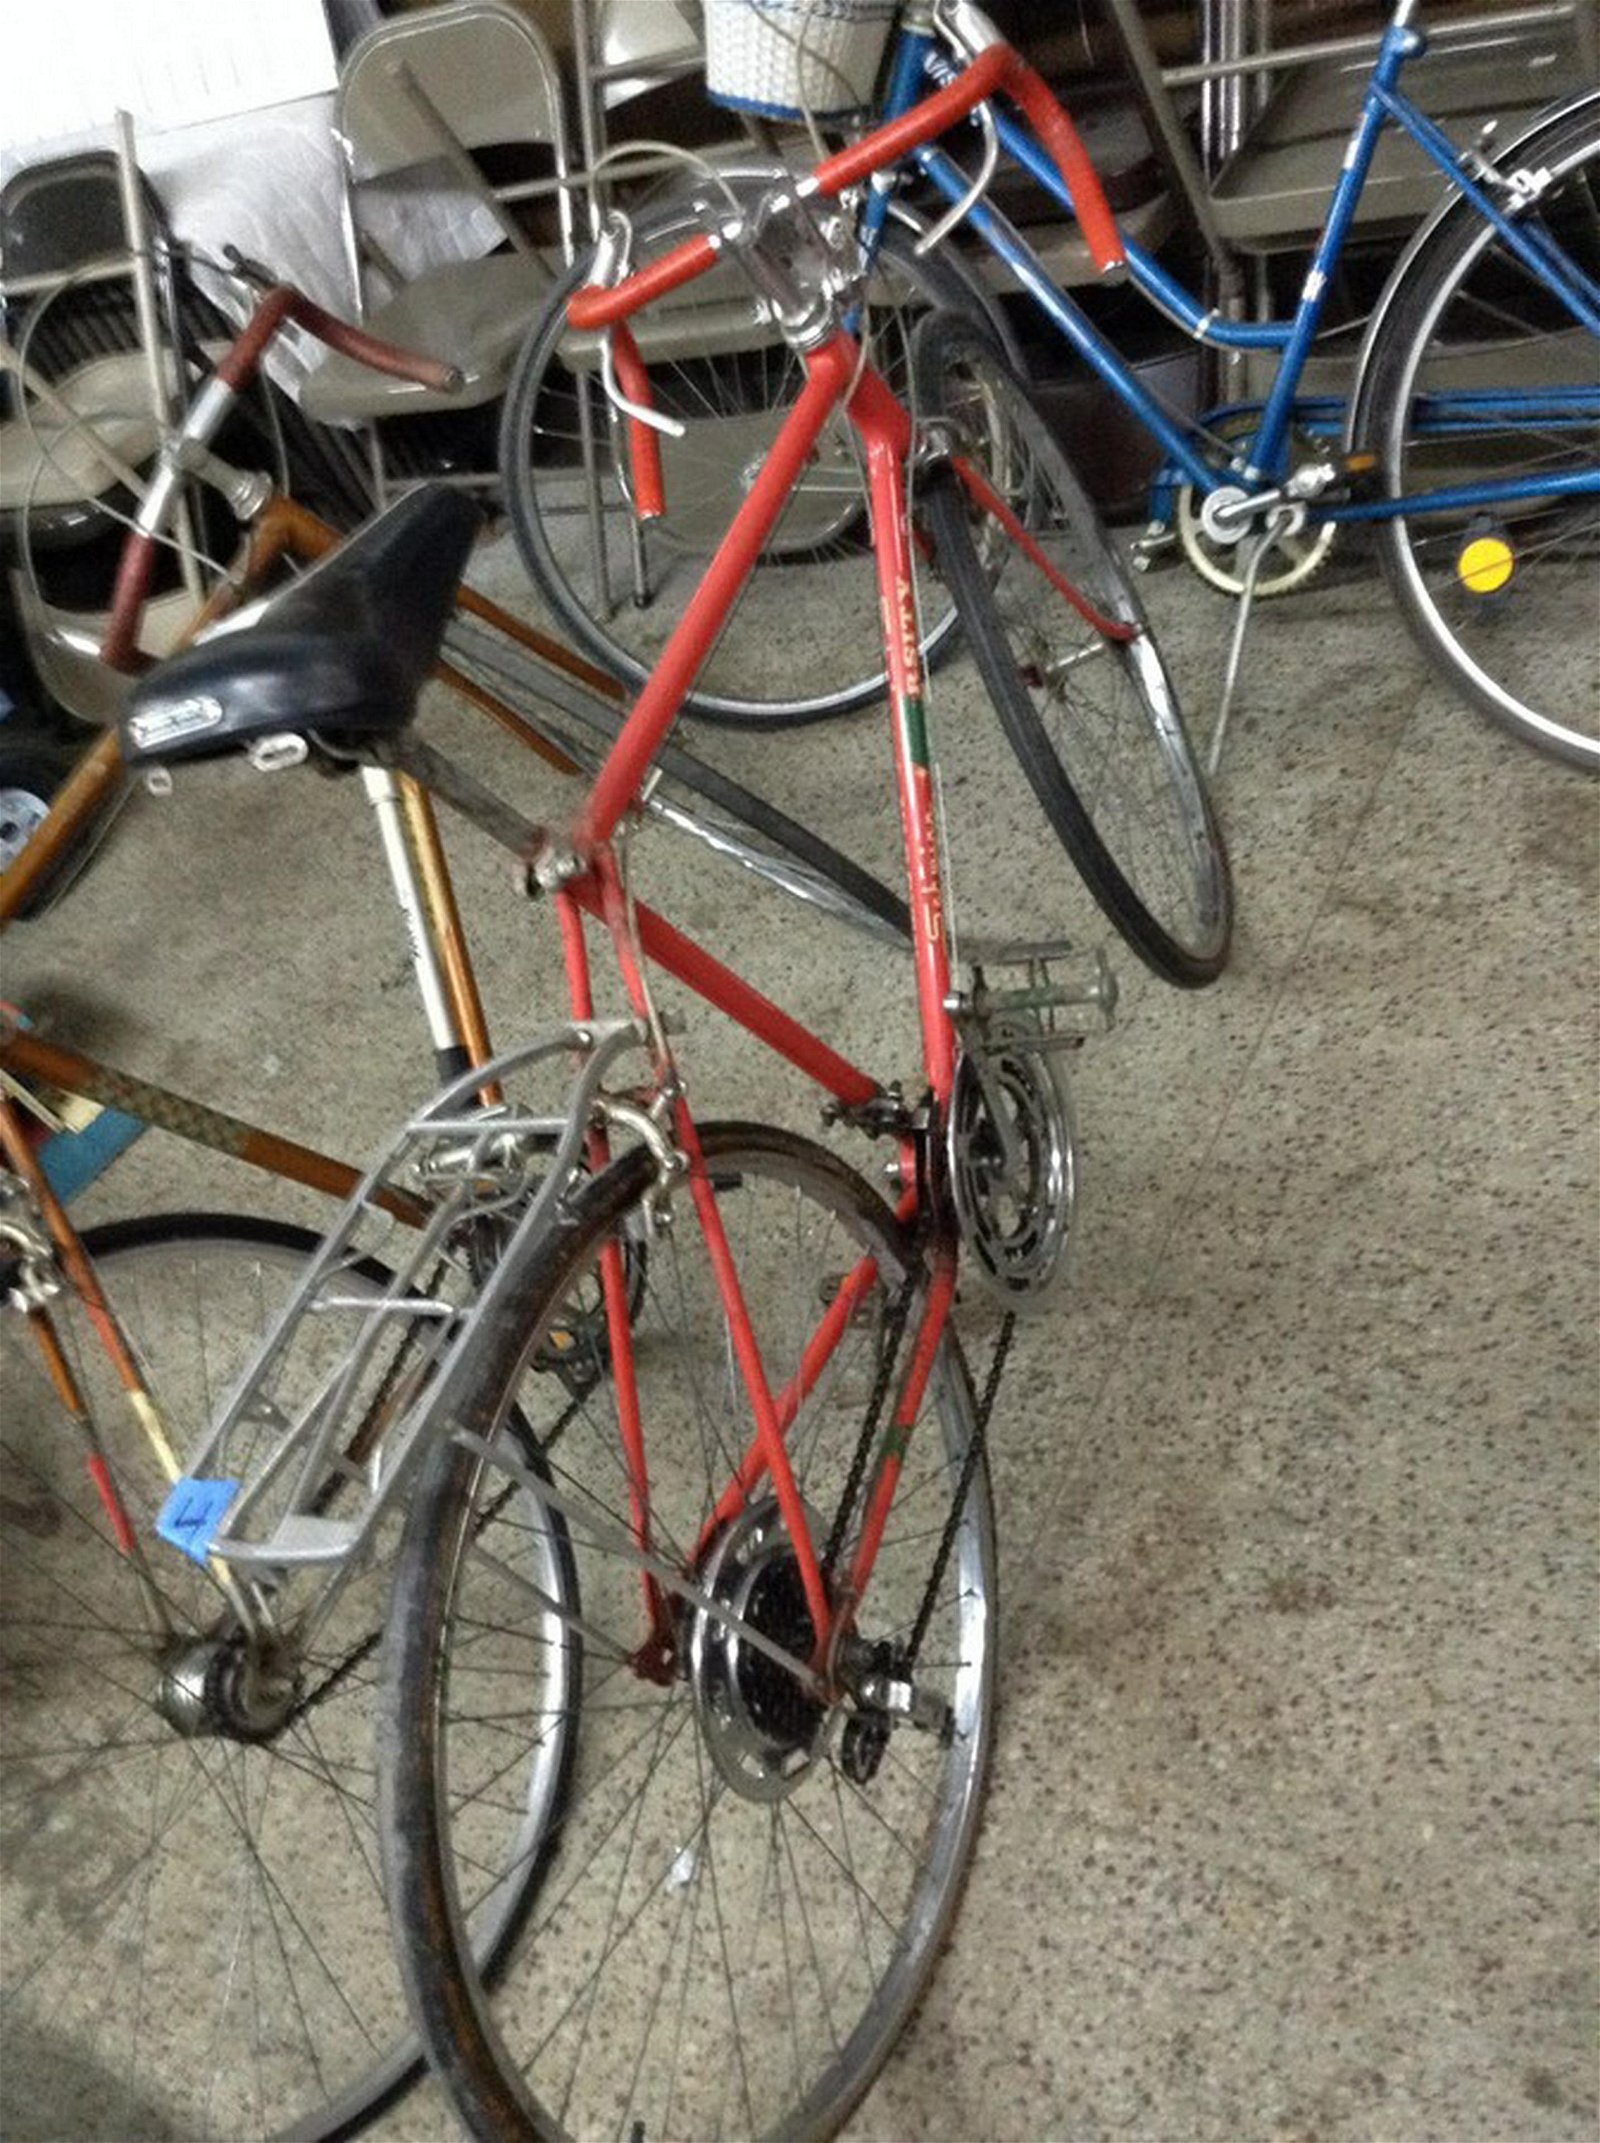 1970 Schwinn English Racer with luggarge rack & extras